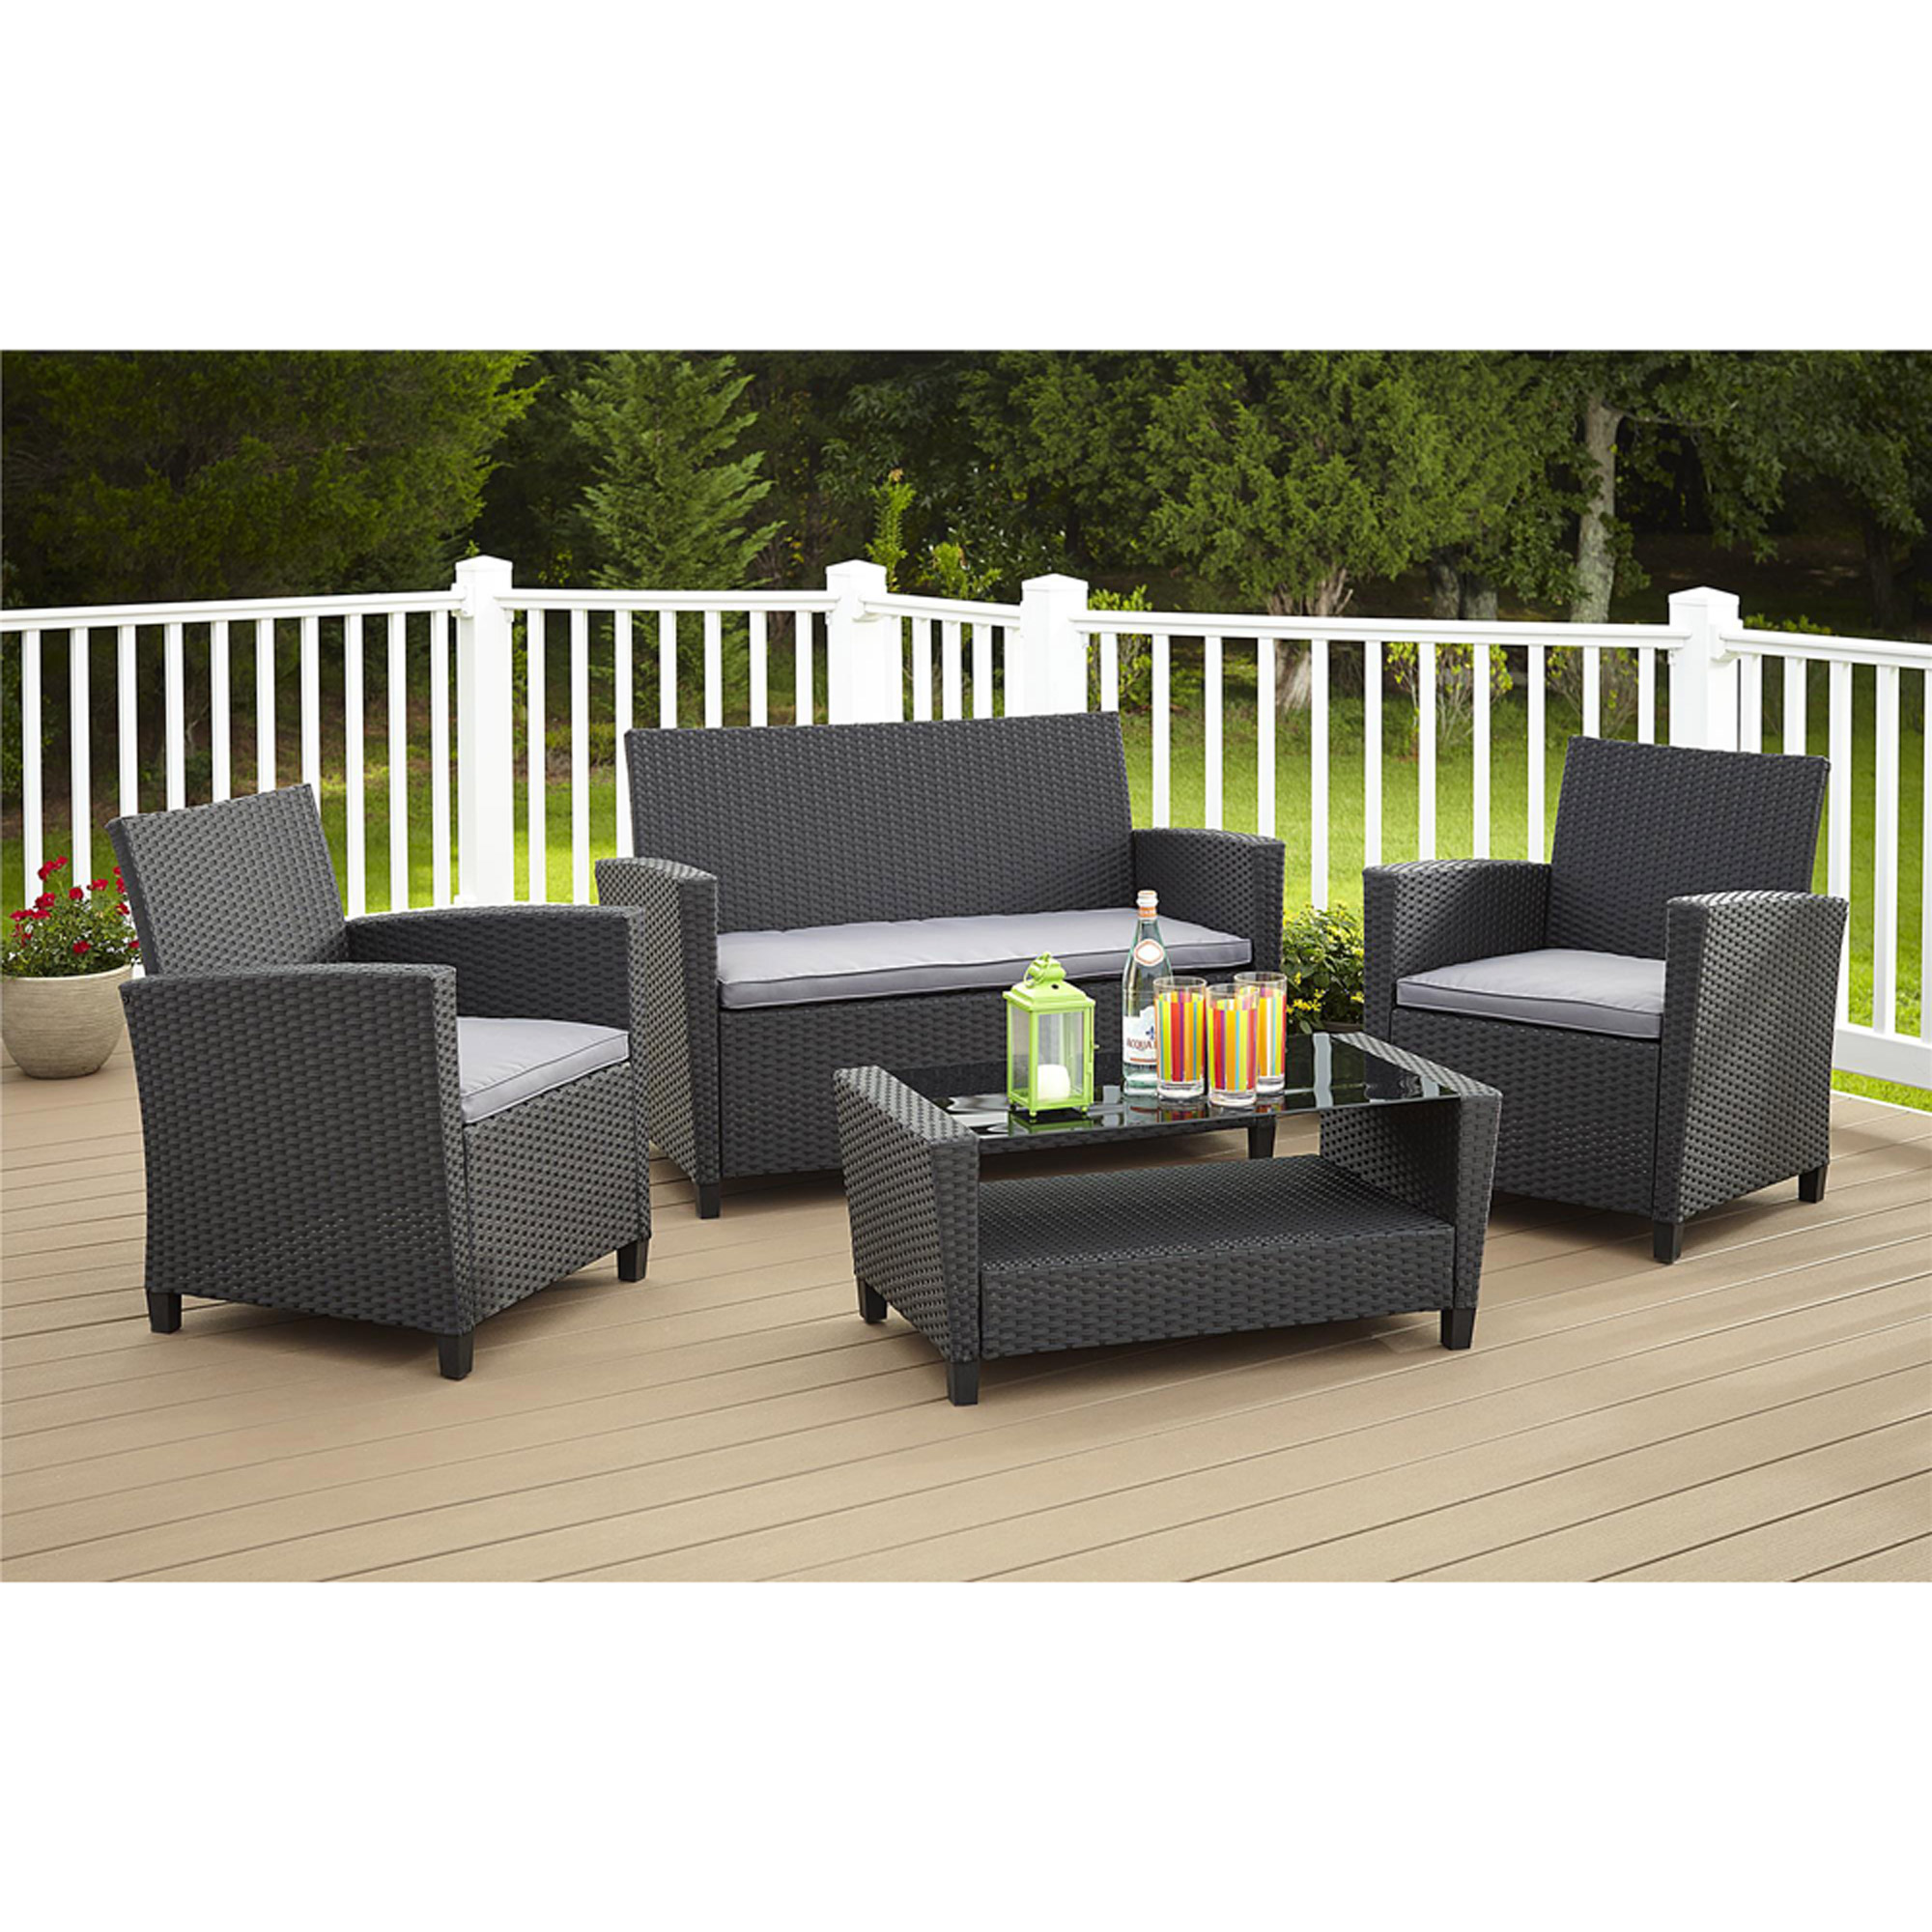 Cosco Outdoor Malmo 4-Piece Resin Wicker Patio Conversation Set, Black